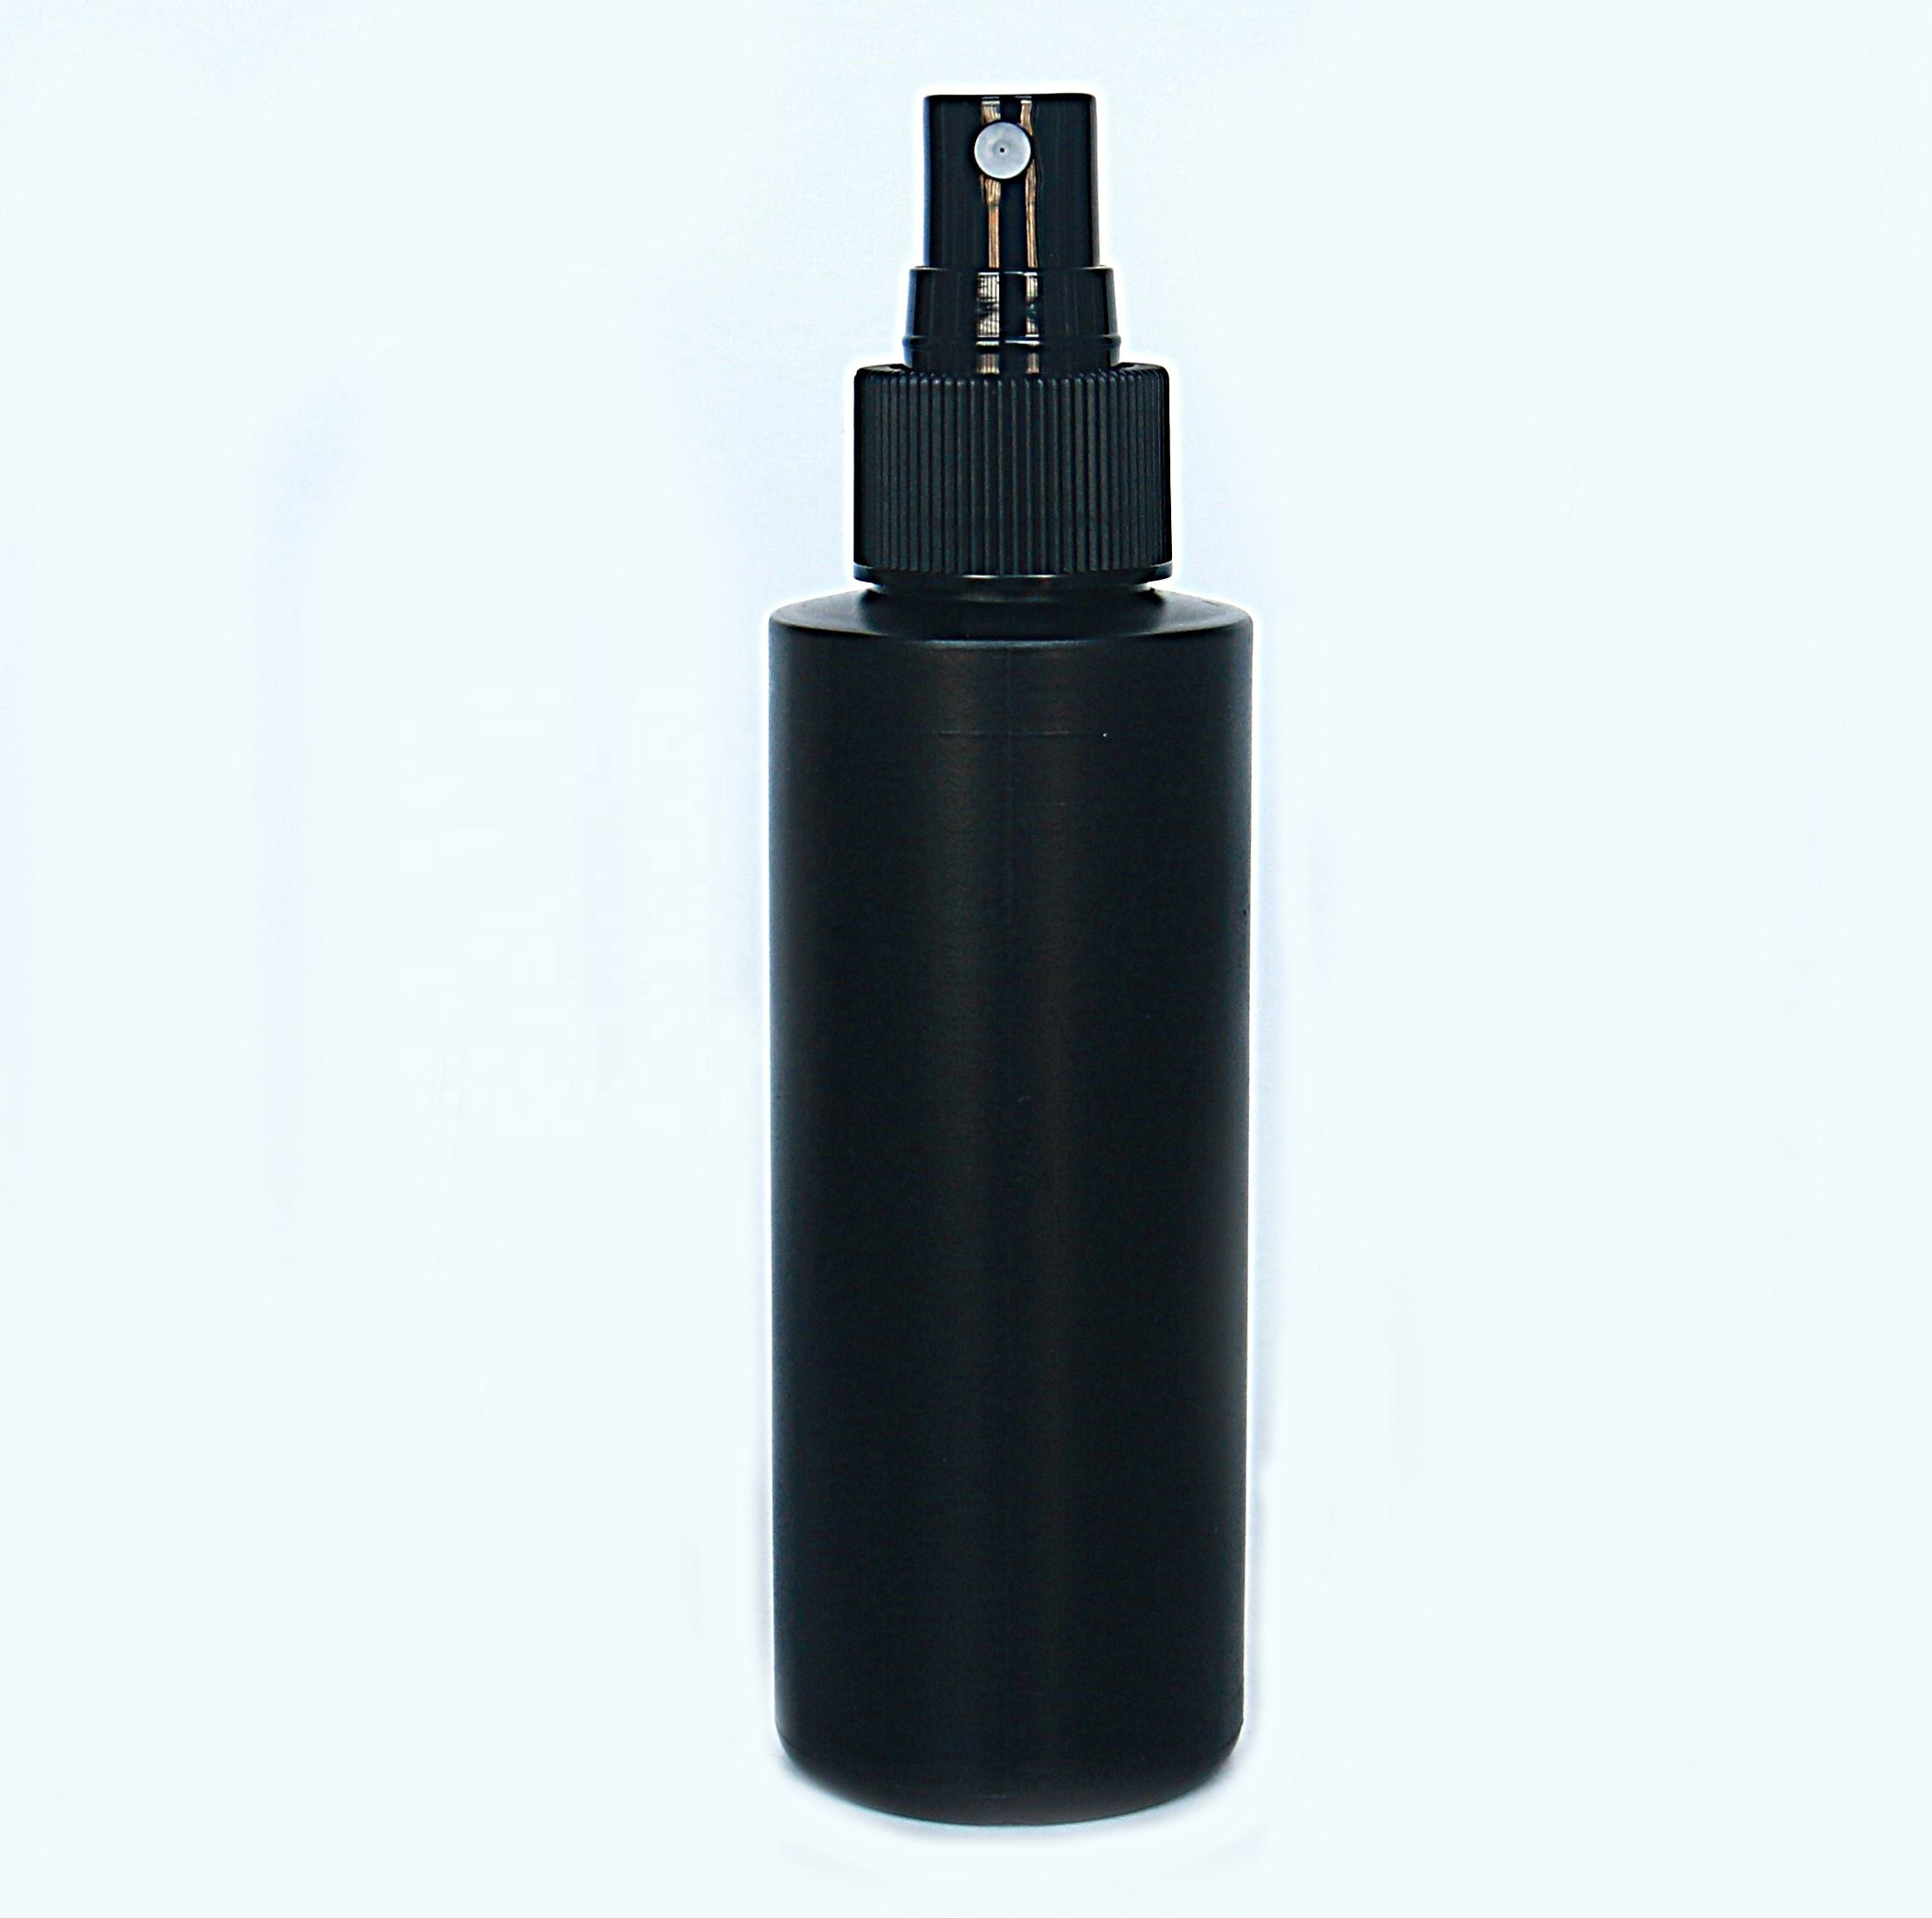 plastic bottle 60ml fine mist spray bottle mist spray bottle 2 OZ cbd oil packaging